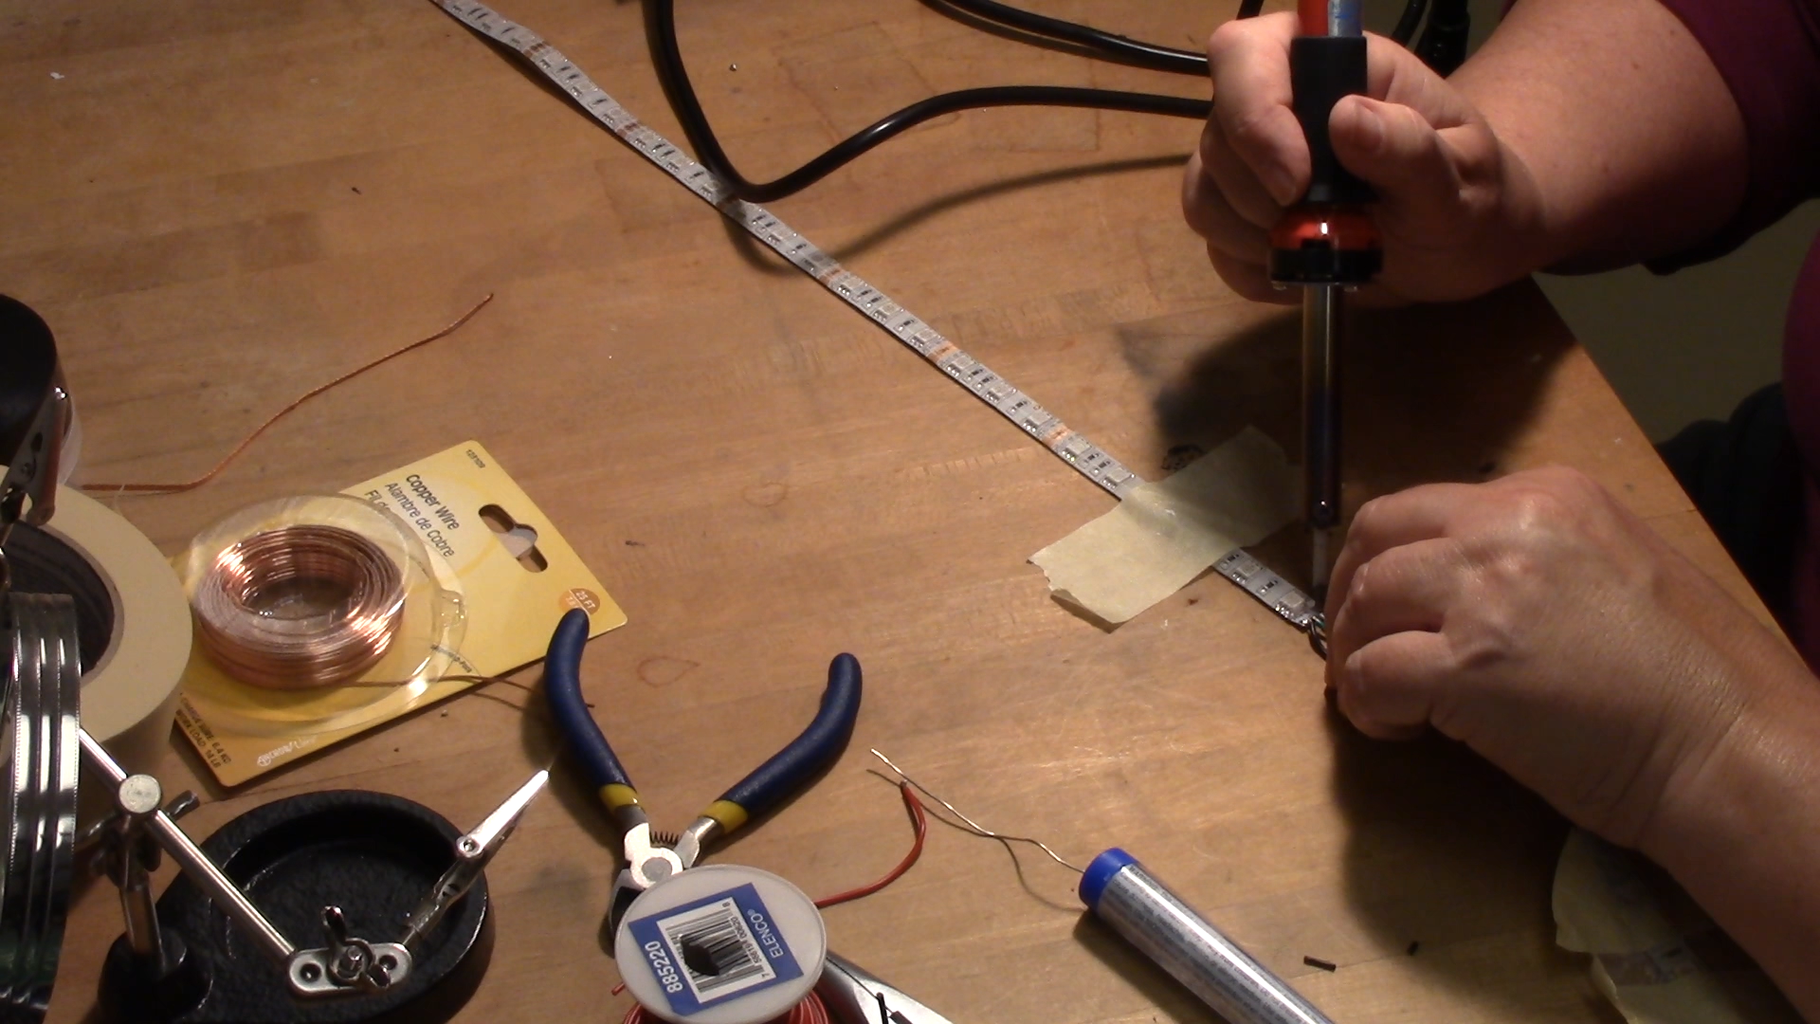 Solder and Test the Electrical Components